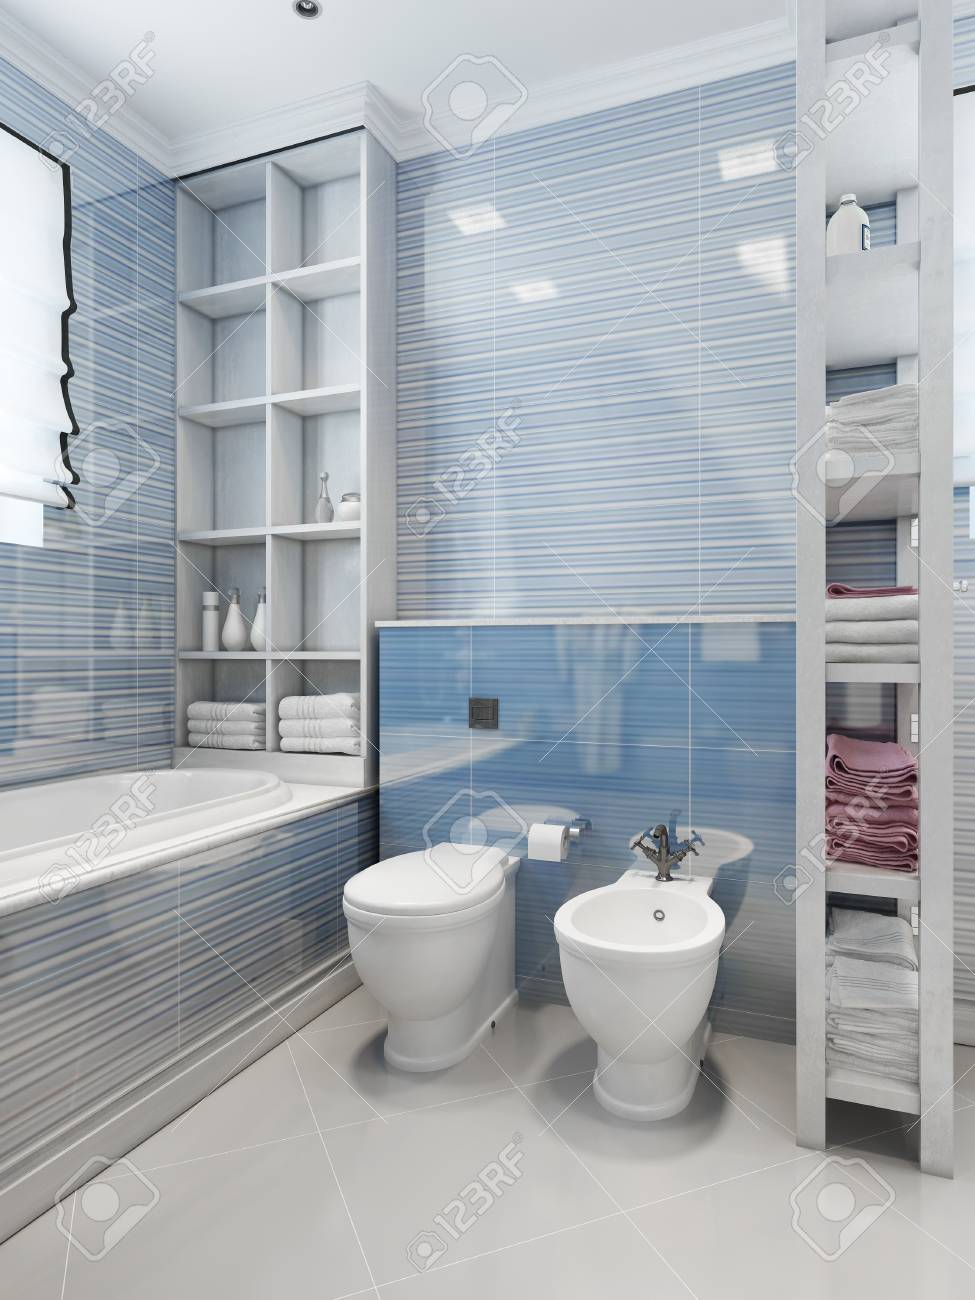 Bathroom Art Deco Style. 3d Render Stock Photo, Picture And Royalty ...